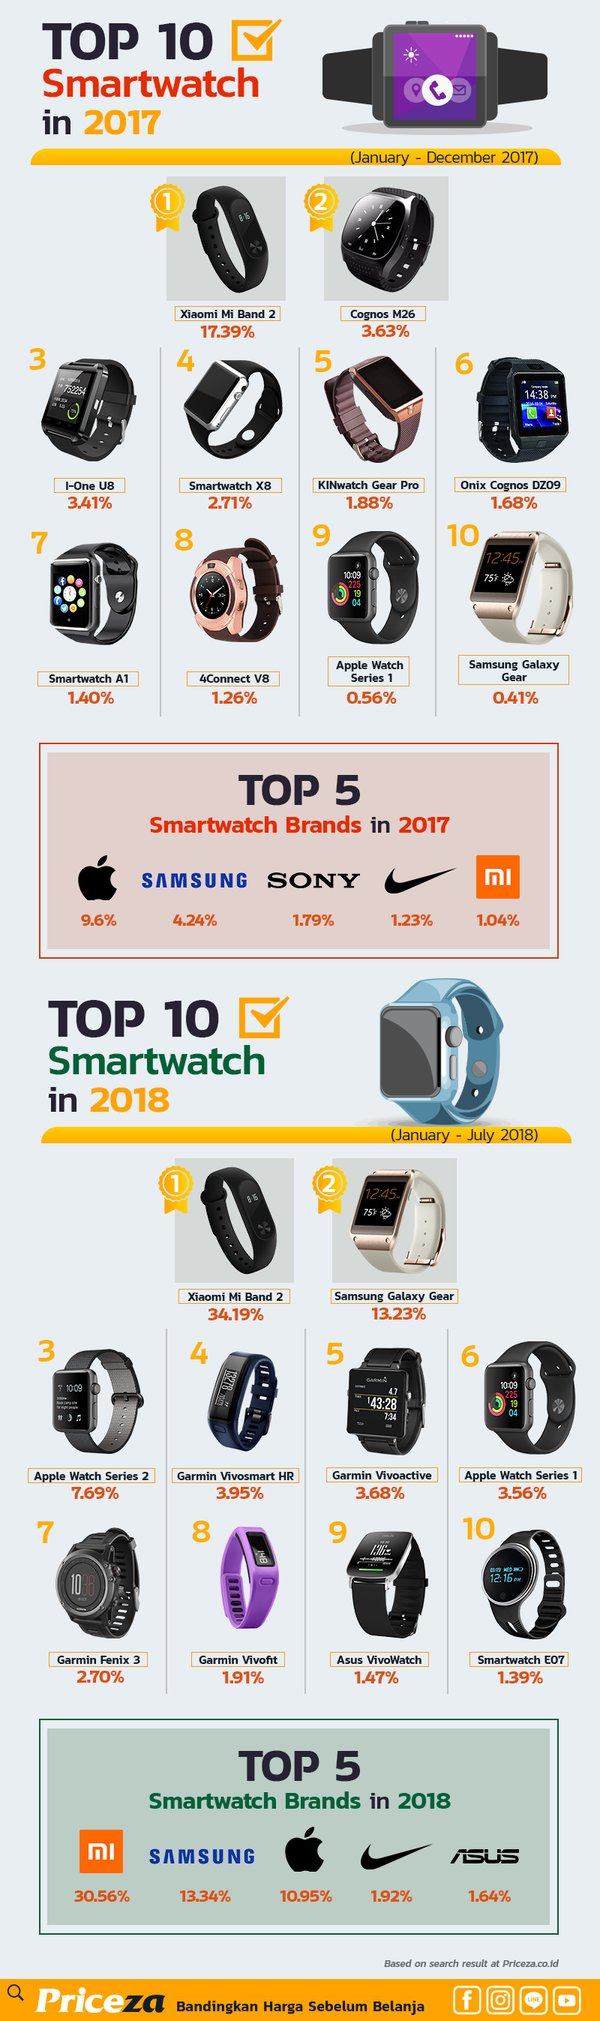 Smartwatch Trends in 2017-2018